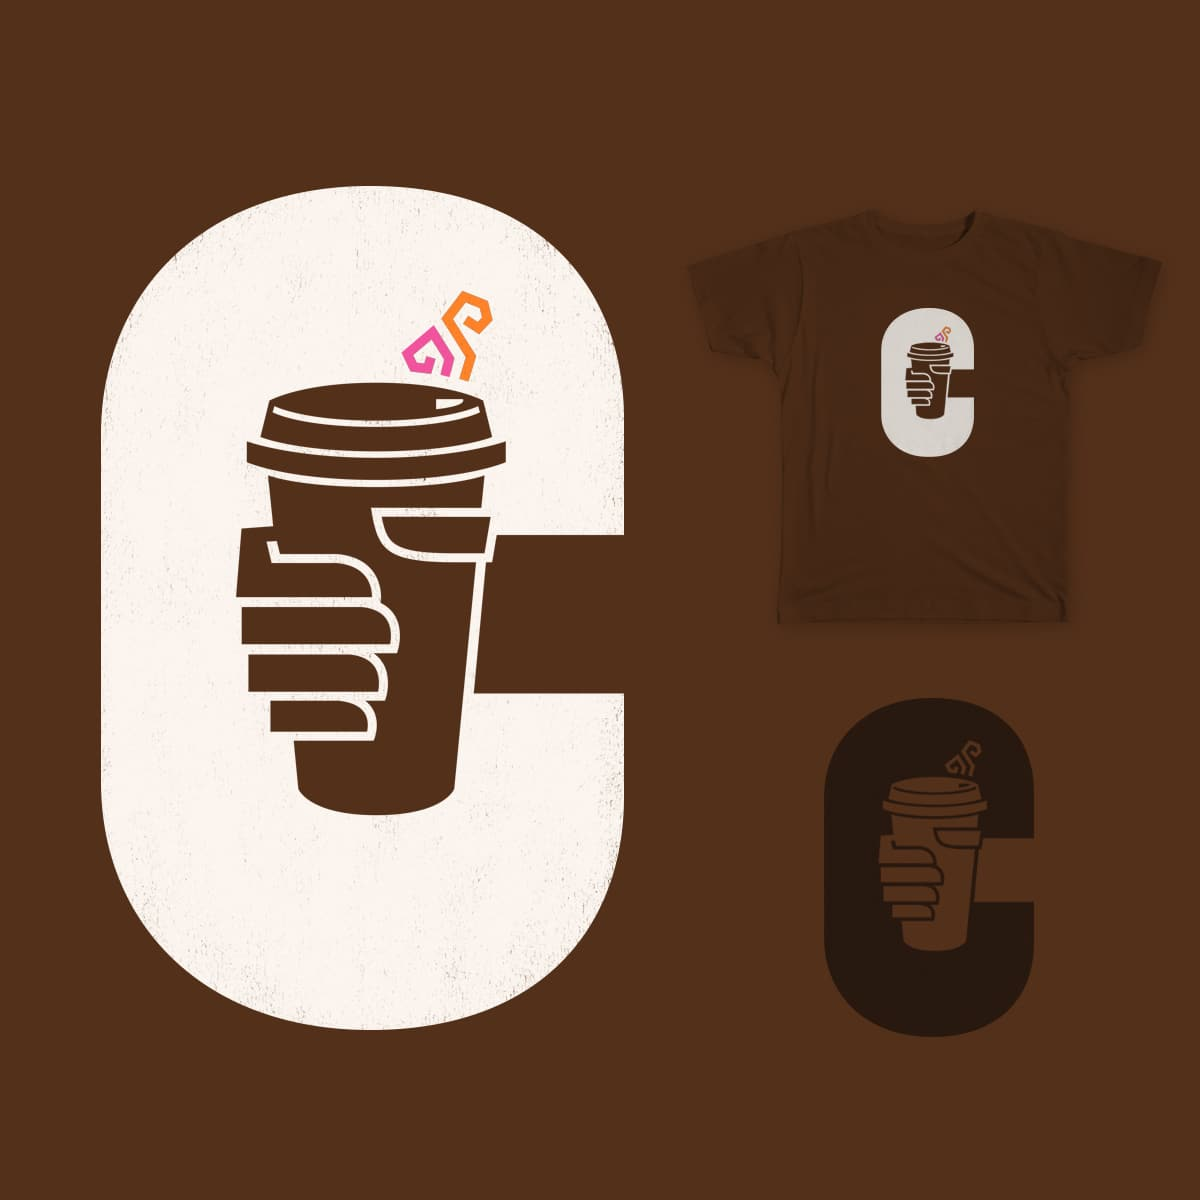 C is for Coffee by murraymullet on Threadless